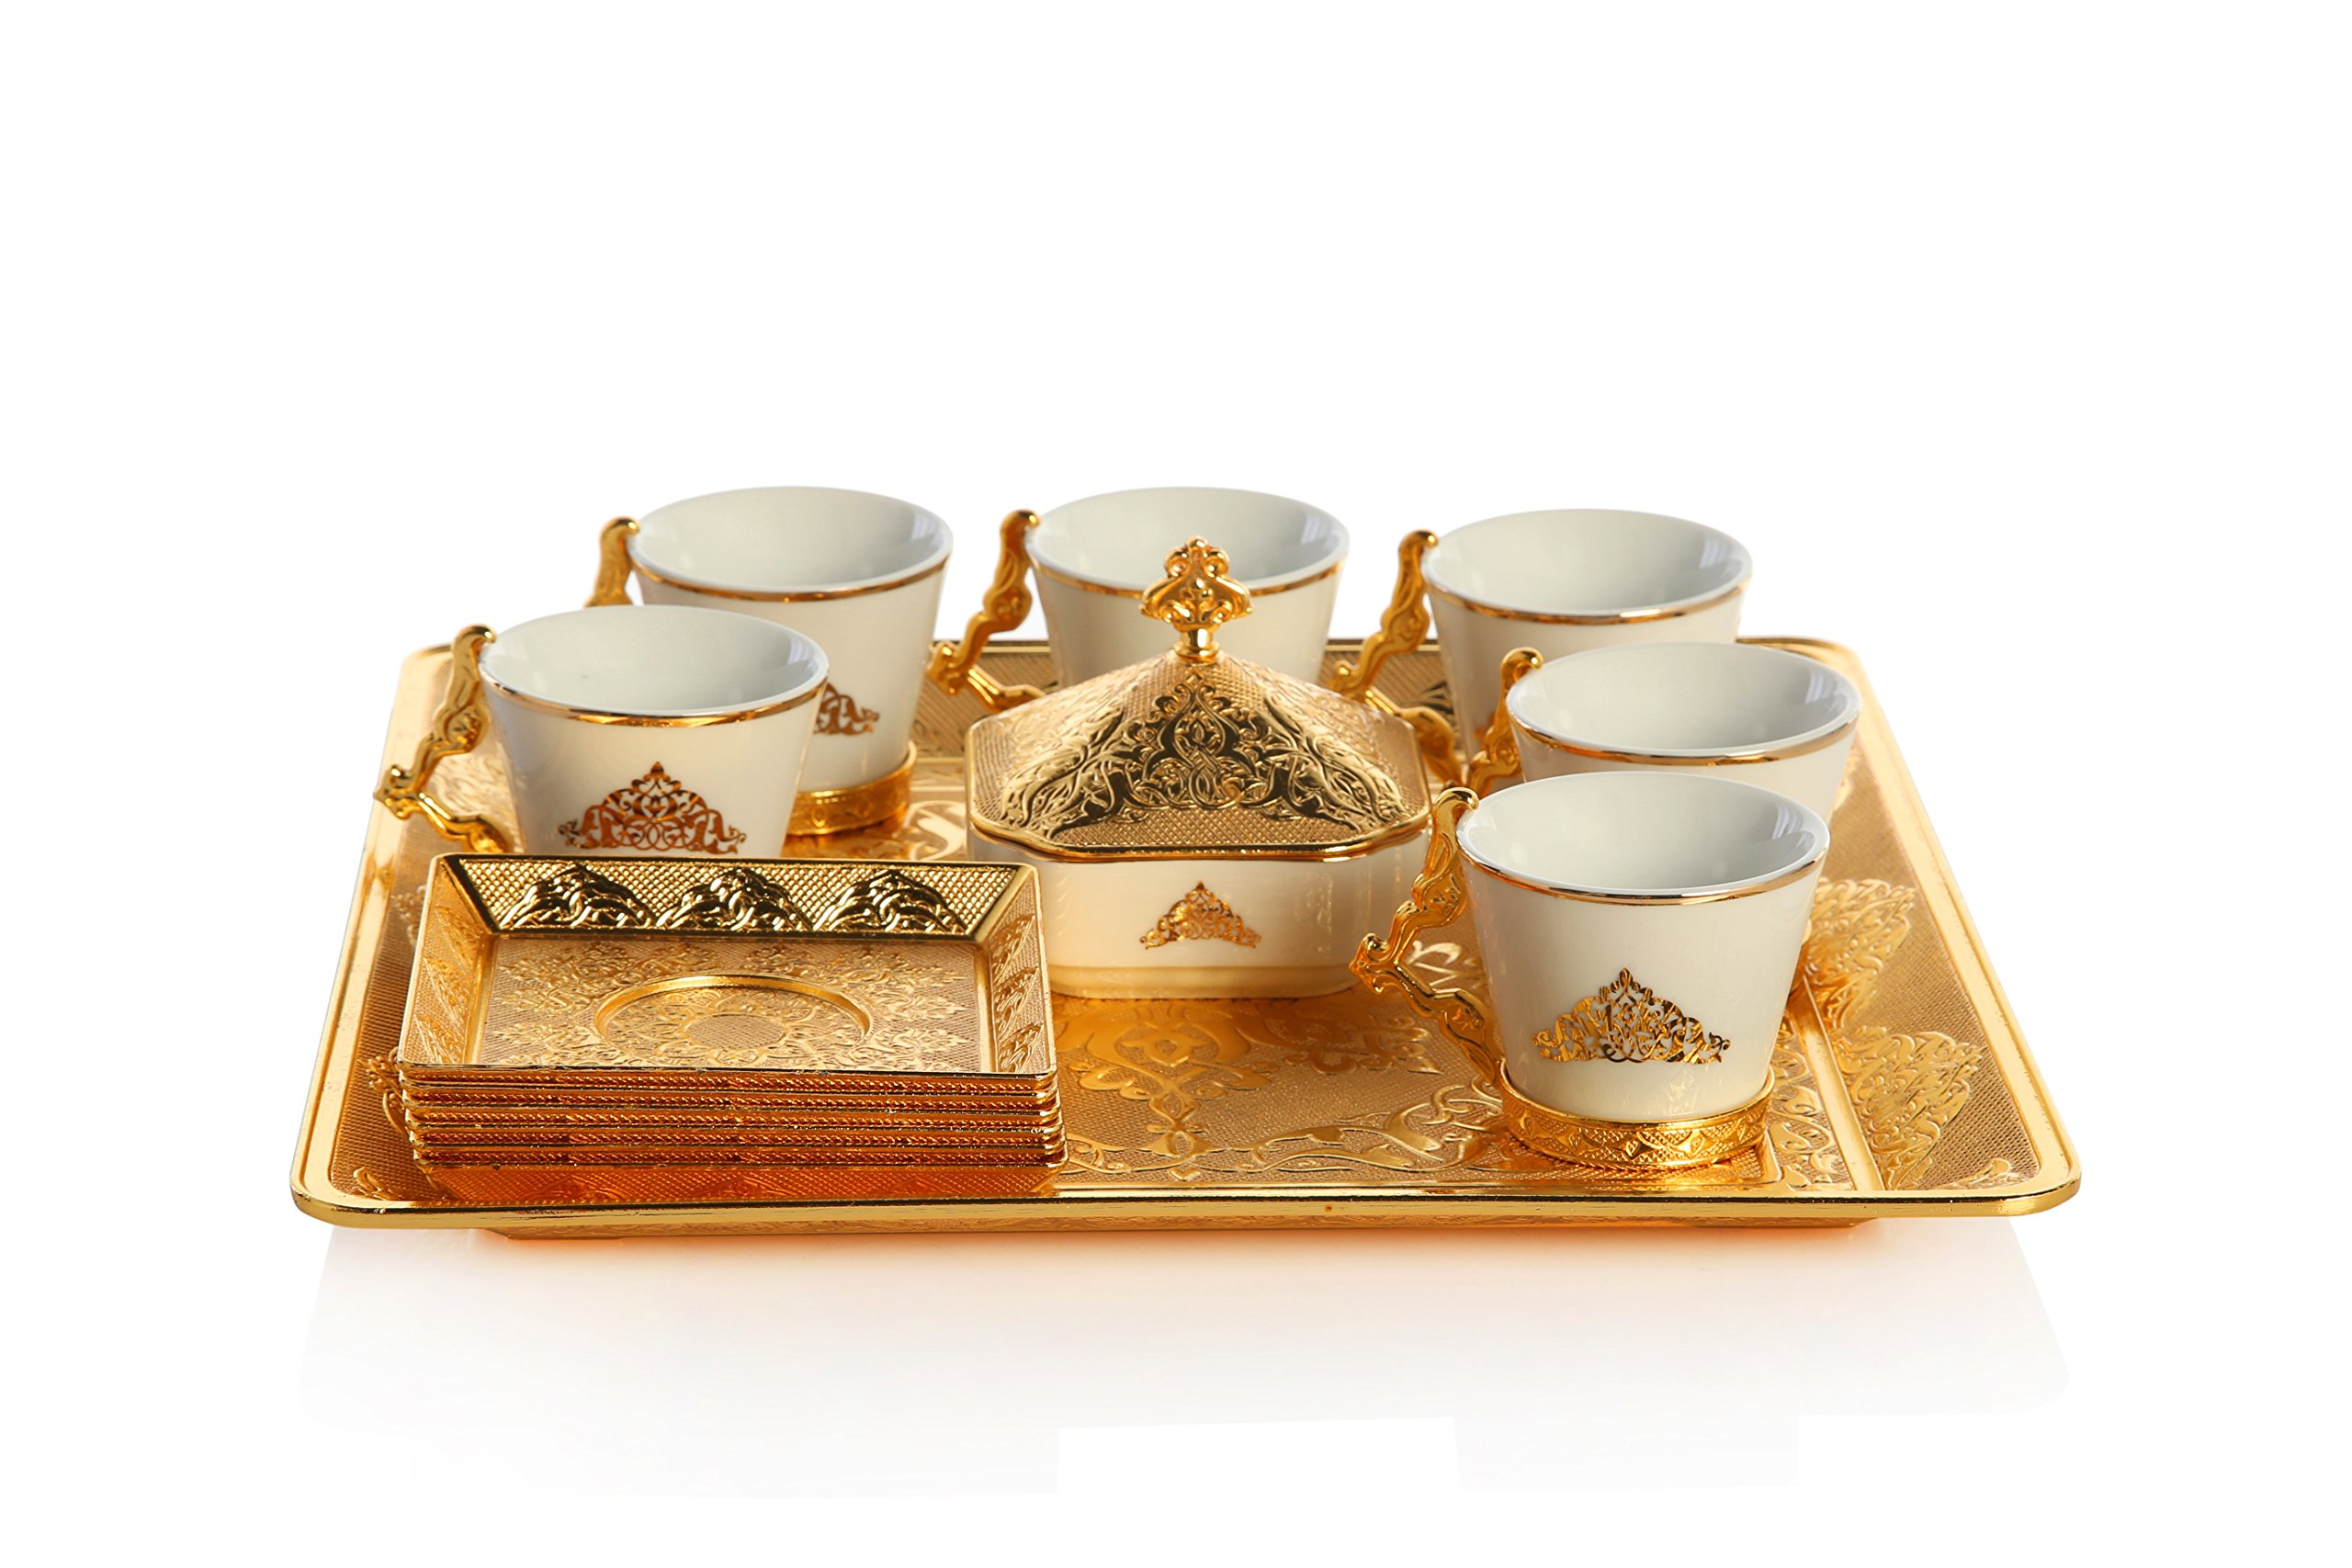 Gold Case Gold Plated Turkish, Arabic, Greek and Espresso Coffee Set for 6 - Made in Turkey - 21 Pieced Set for 6, Gold